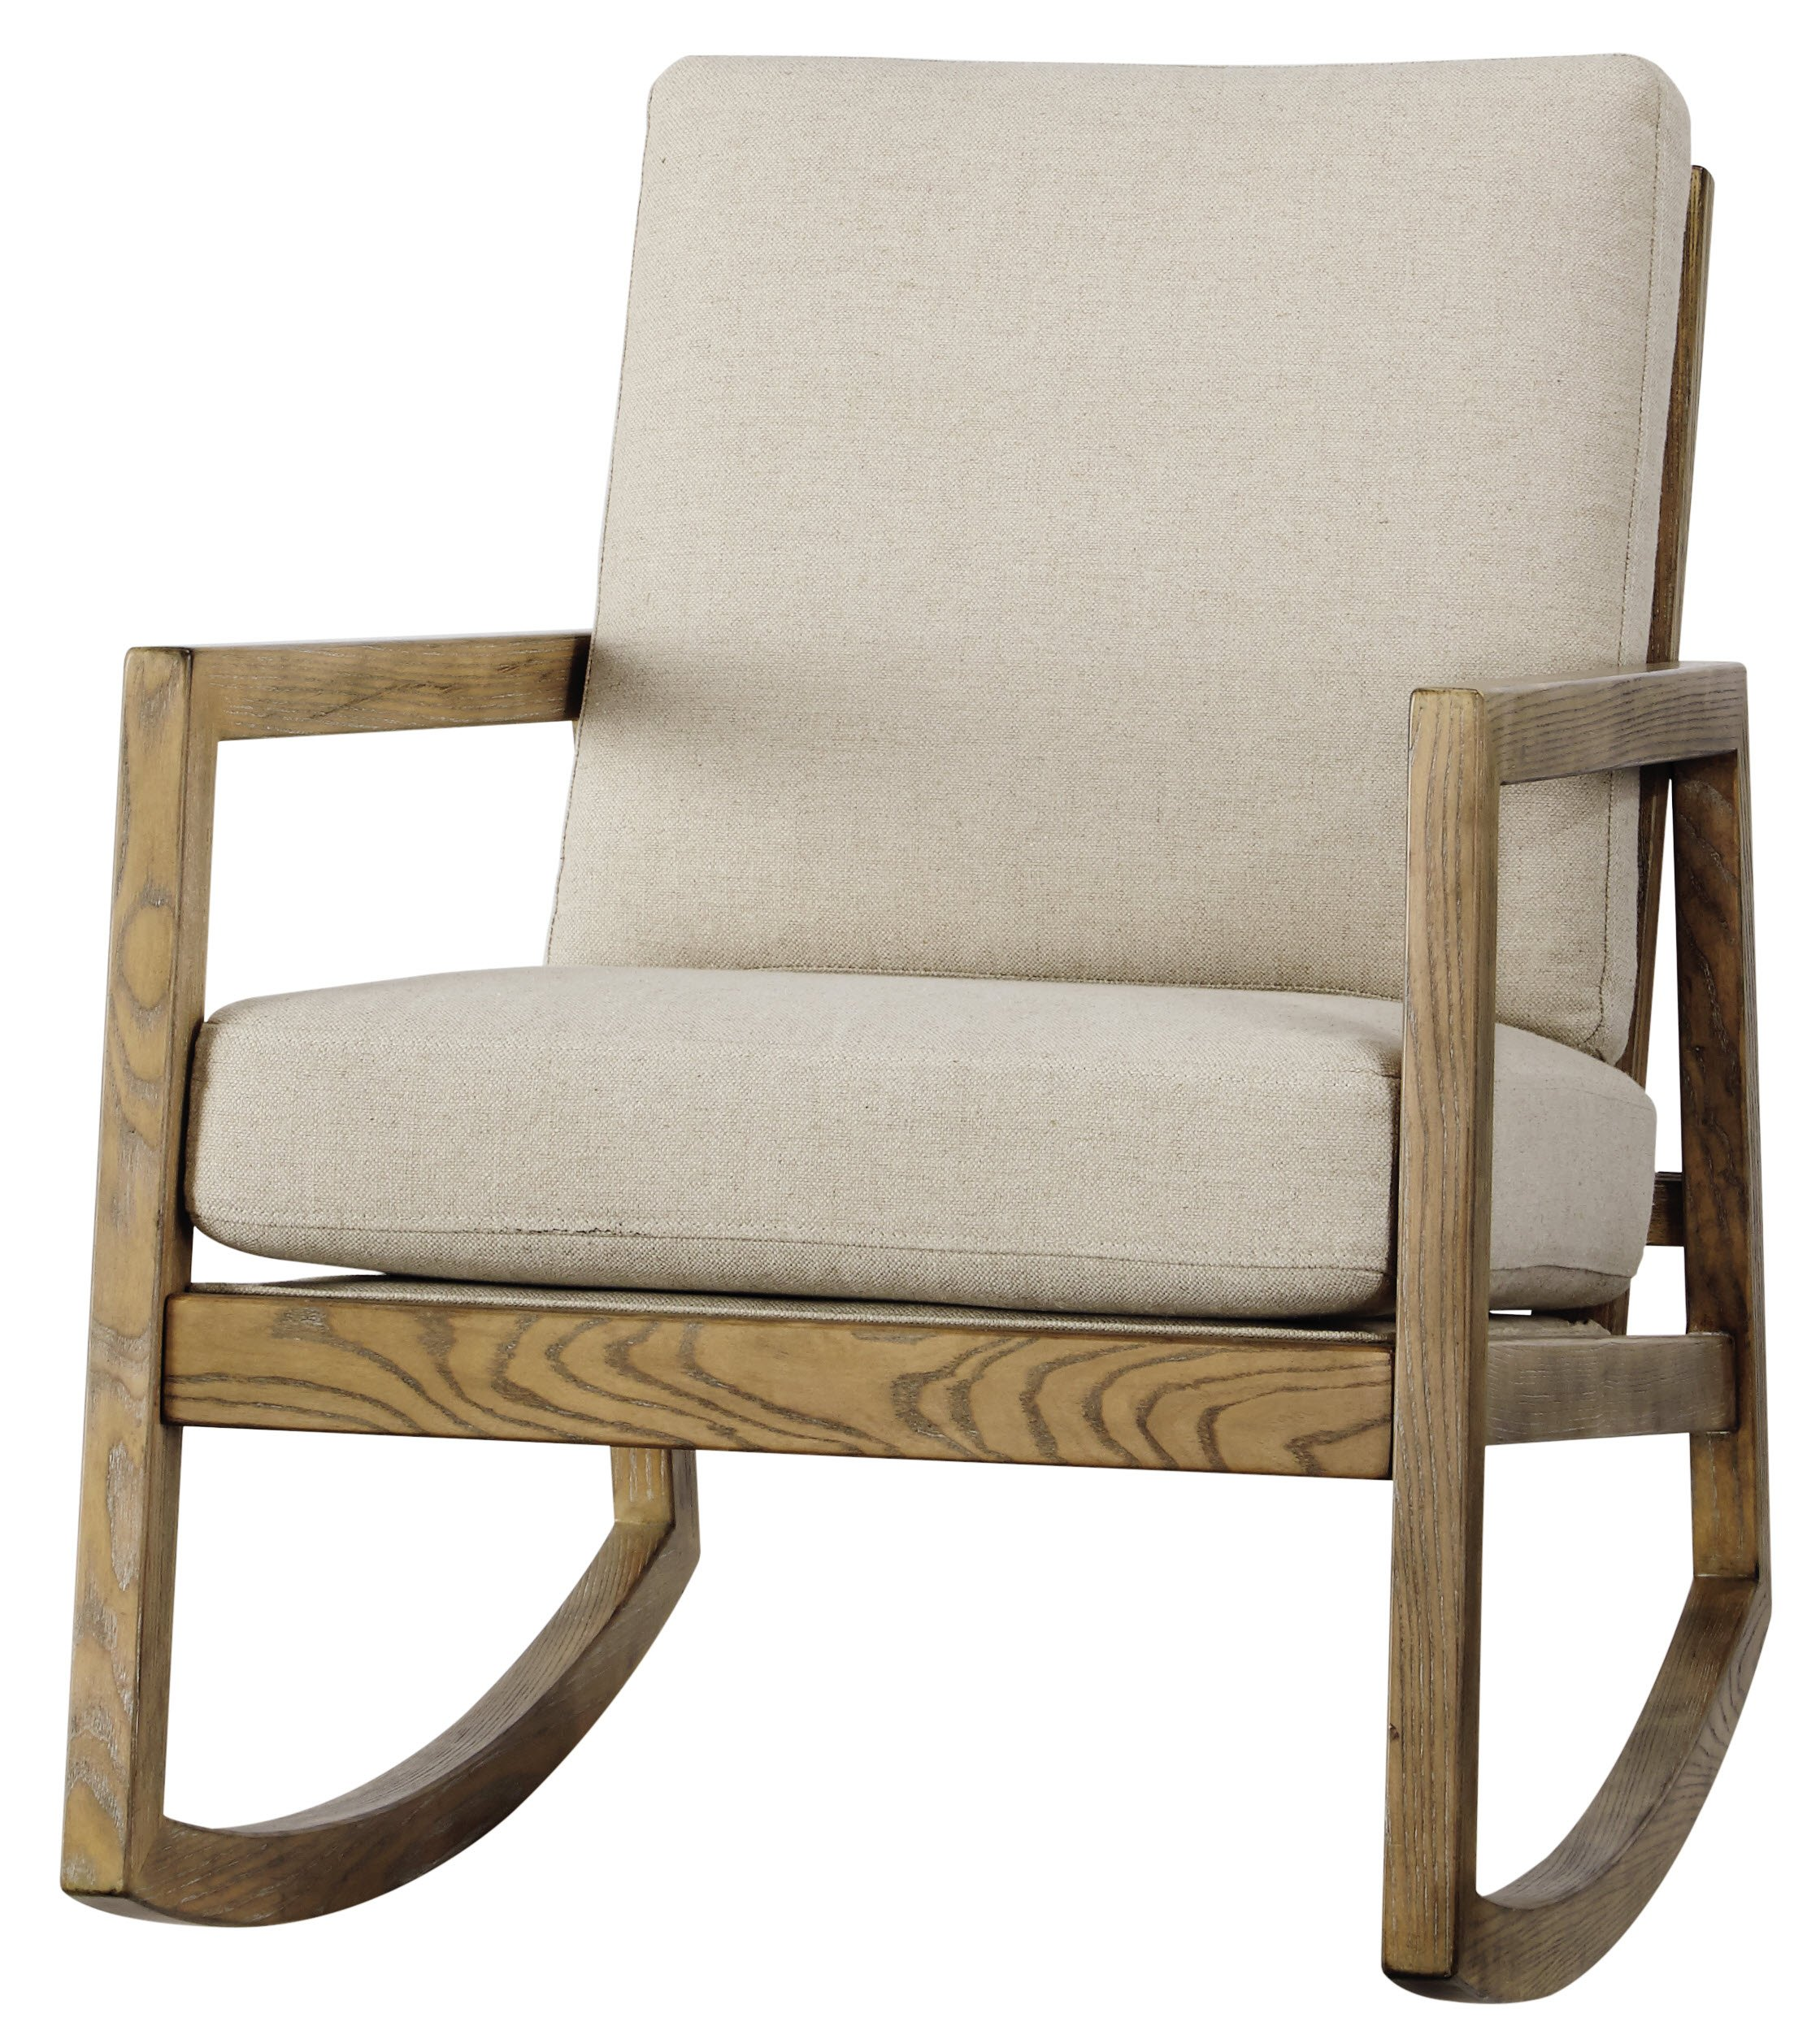 Ashley Furniture Signature Design - Novelda Rocking Accent Chair - Neutral Tan - Faux Wood Finish - LIVING ROOM ROCKING CHAIR: This accent chair touts sleek lines, but with subtle country-chic style. Warm, neutral hues play up the charm, while the plush cushions indulge you in modern comfort DEEP CUSHIONED COMFORT: Sit back and relax on high-resiliency foam cushions wrapped in a polyester/linen blend. Made complete with an exposed frame in a faux wood finish and squared armrests NATURAL HUES: Embracing materials in their natural form, the neutral fabric and light wooden tone easily matches a range of decor styles-whether yours is mid century, or filled with farmhouse flair - living-room-furniture, living-room, accent-chairs - 91EEVElhmrL -